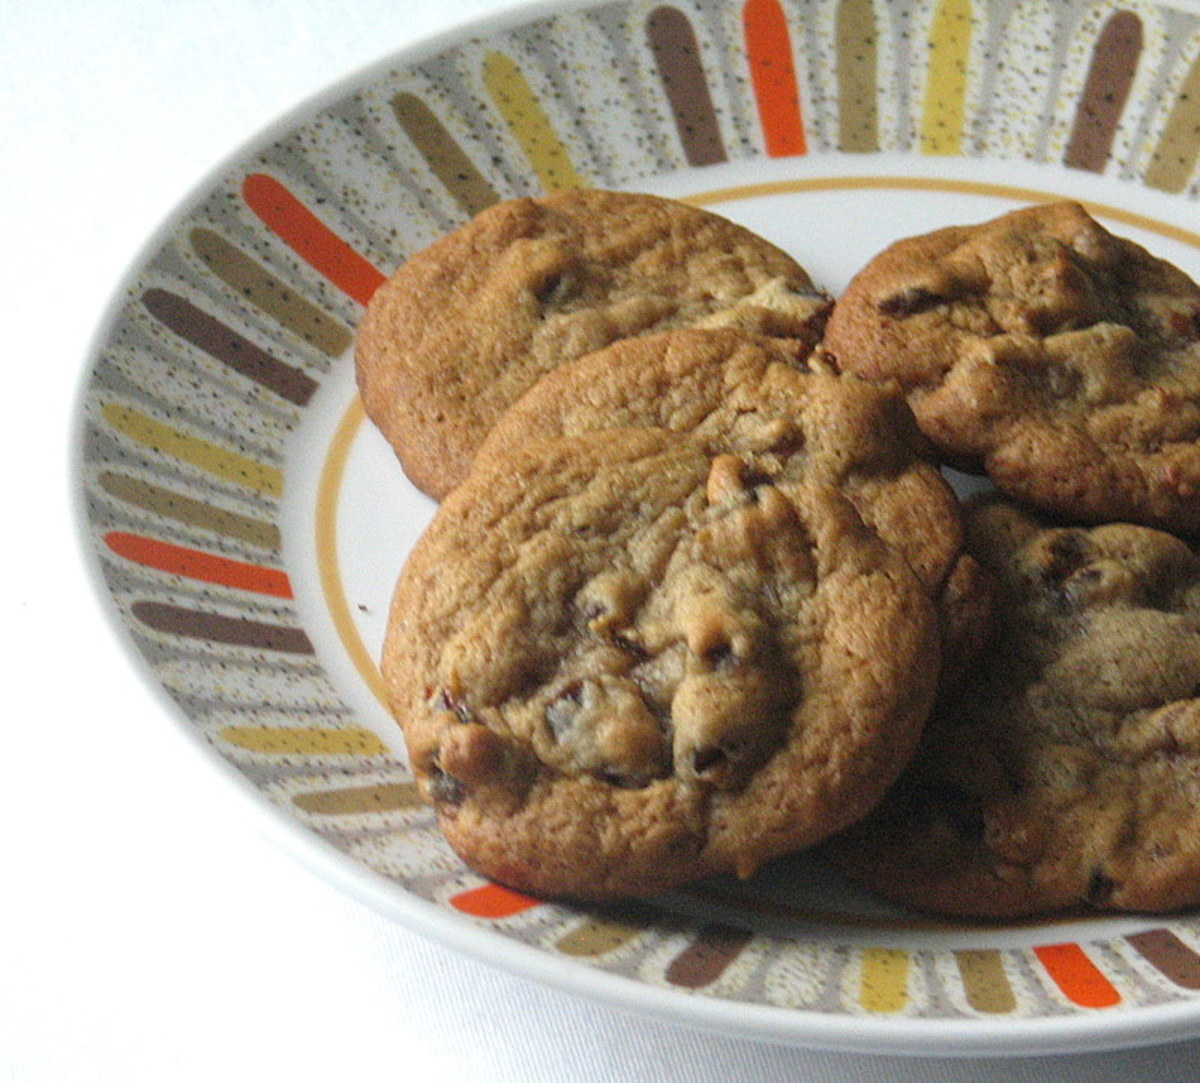 Homemade Hermit Cookies Are Rich With Coffee and Spice